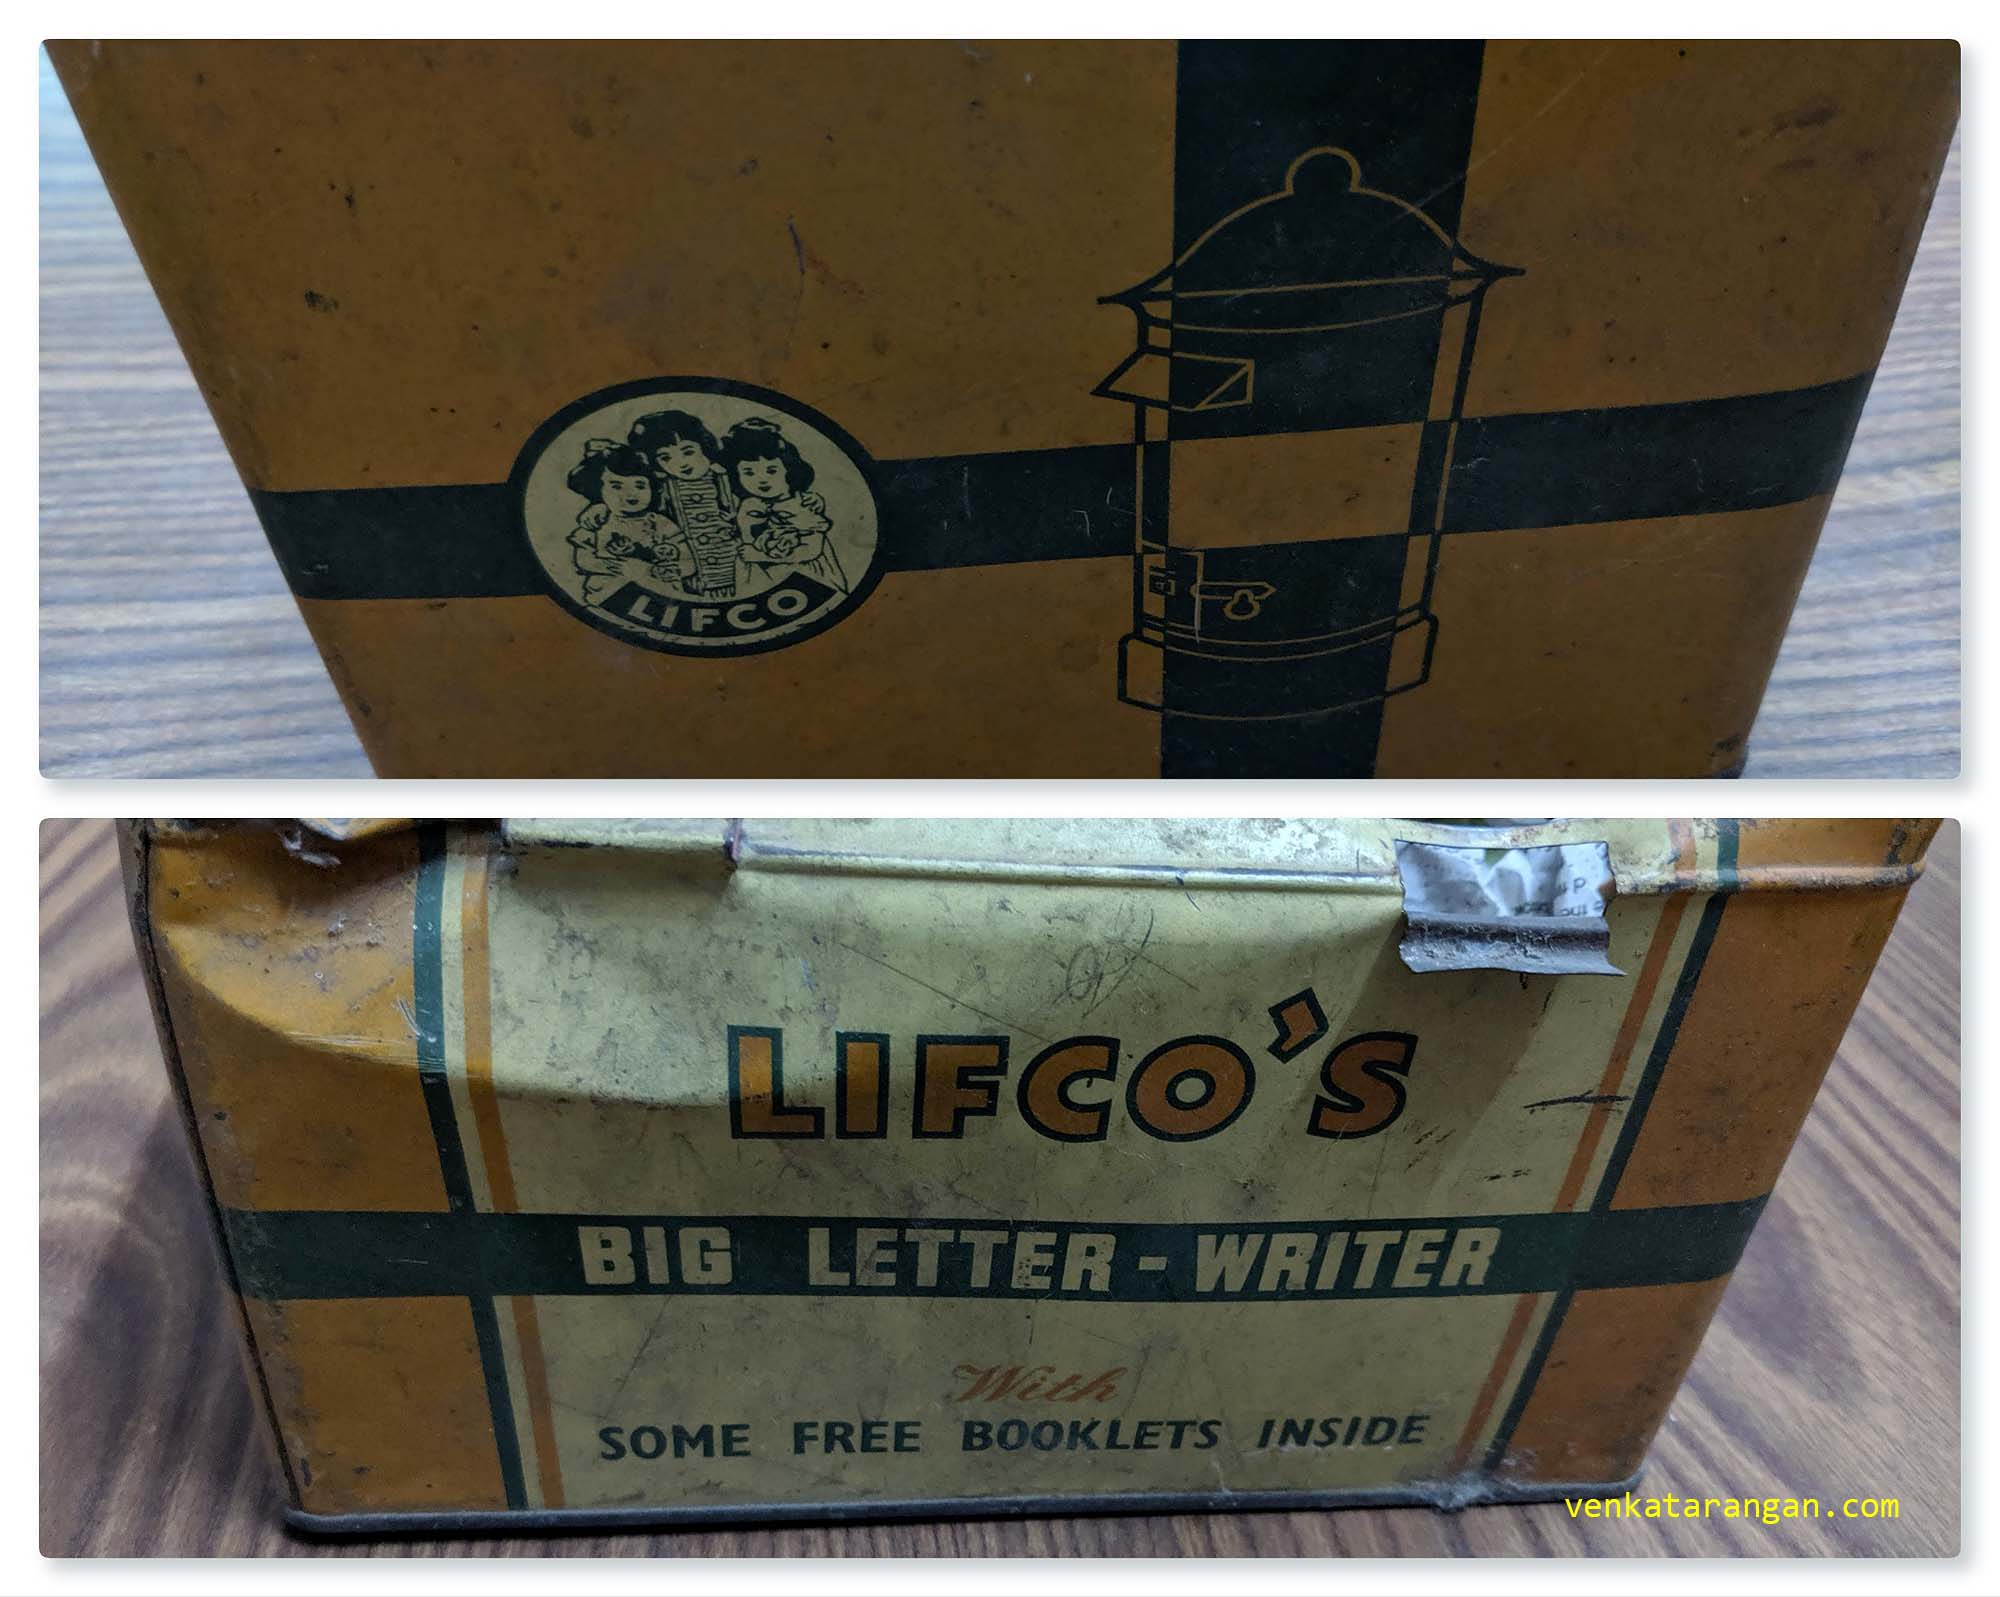 The Metal Box that was used to ship LIFCO's Big Letter Writer